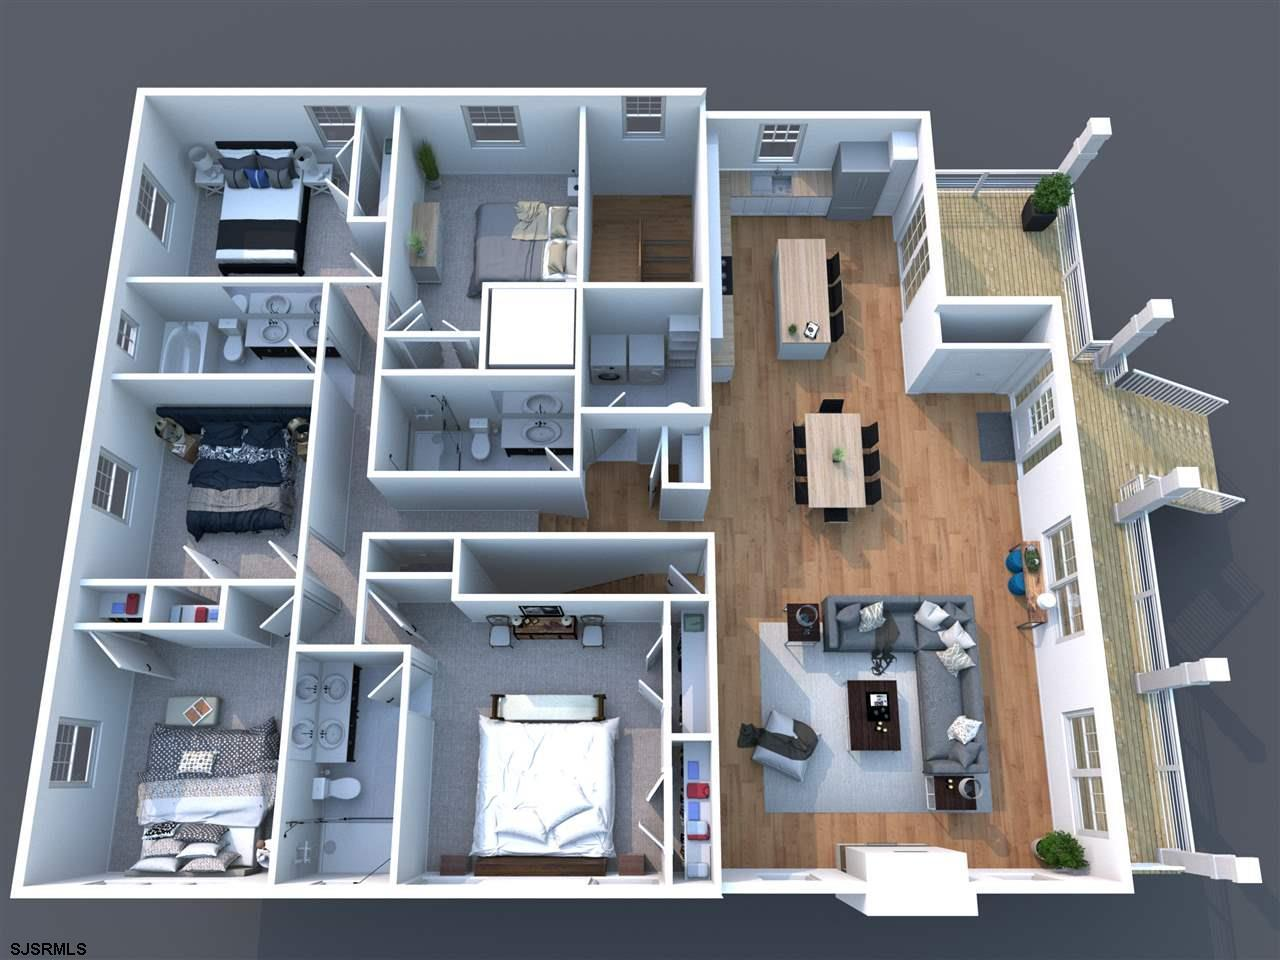 2121 Simpson 1st Floor Rendering.jpeg